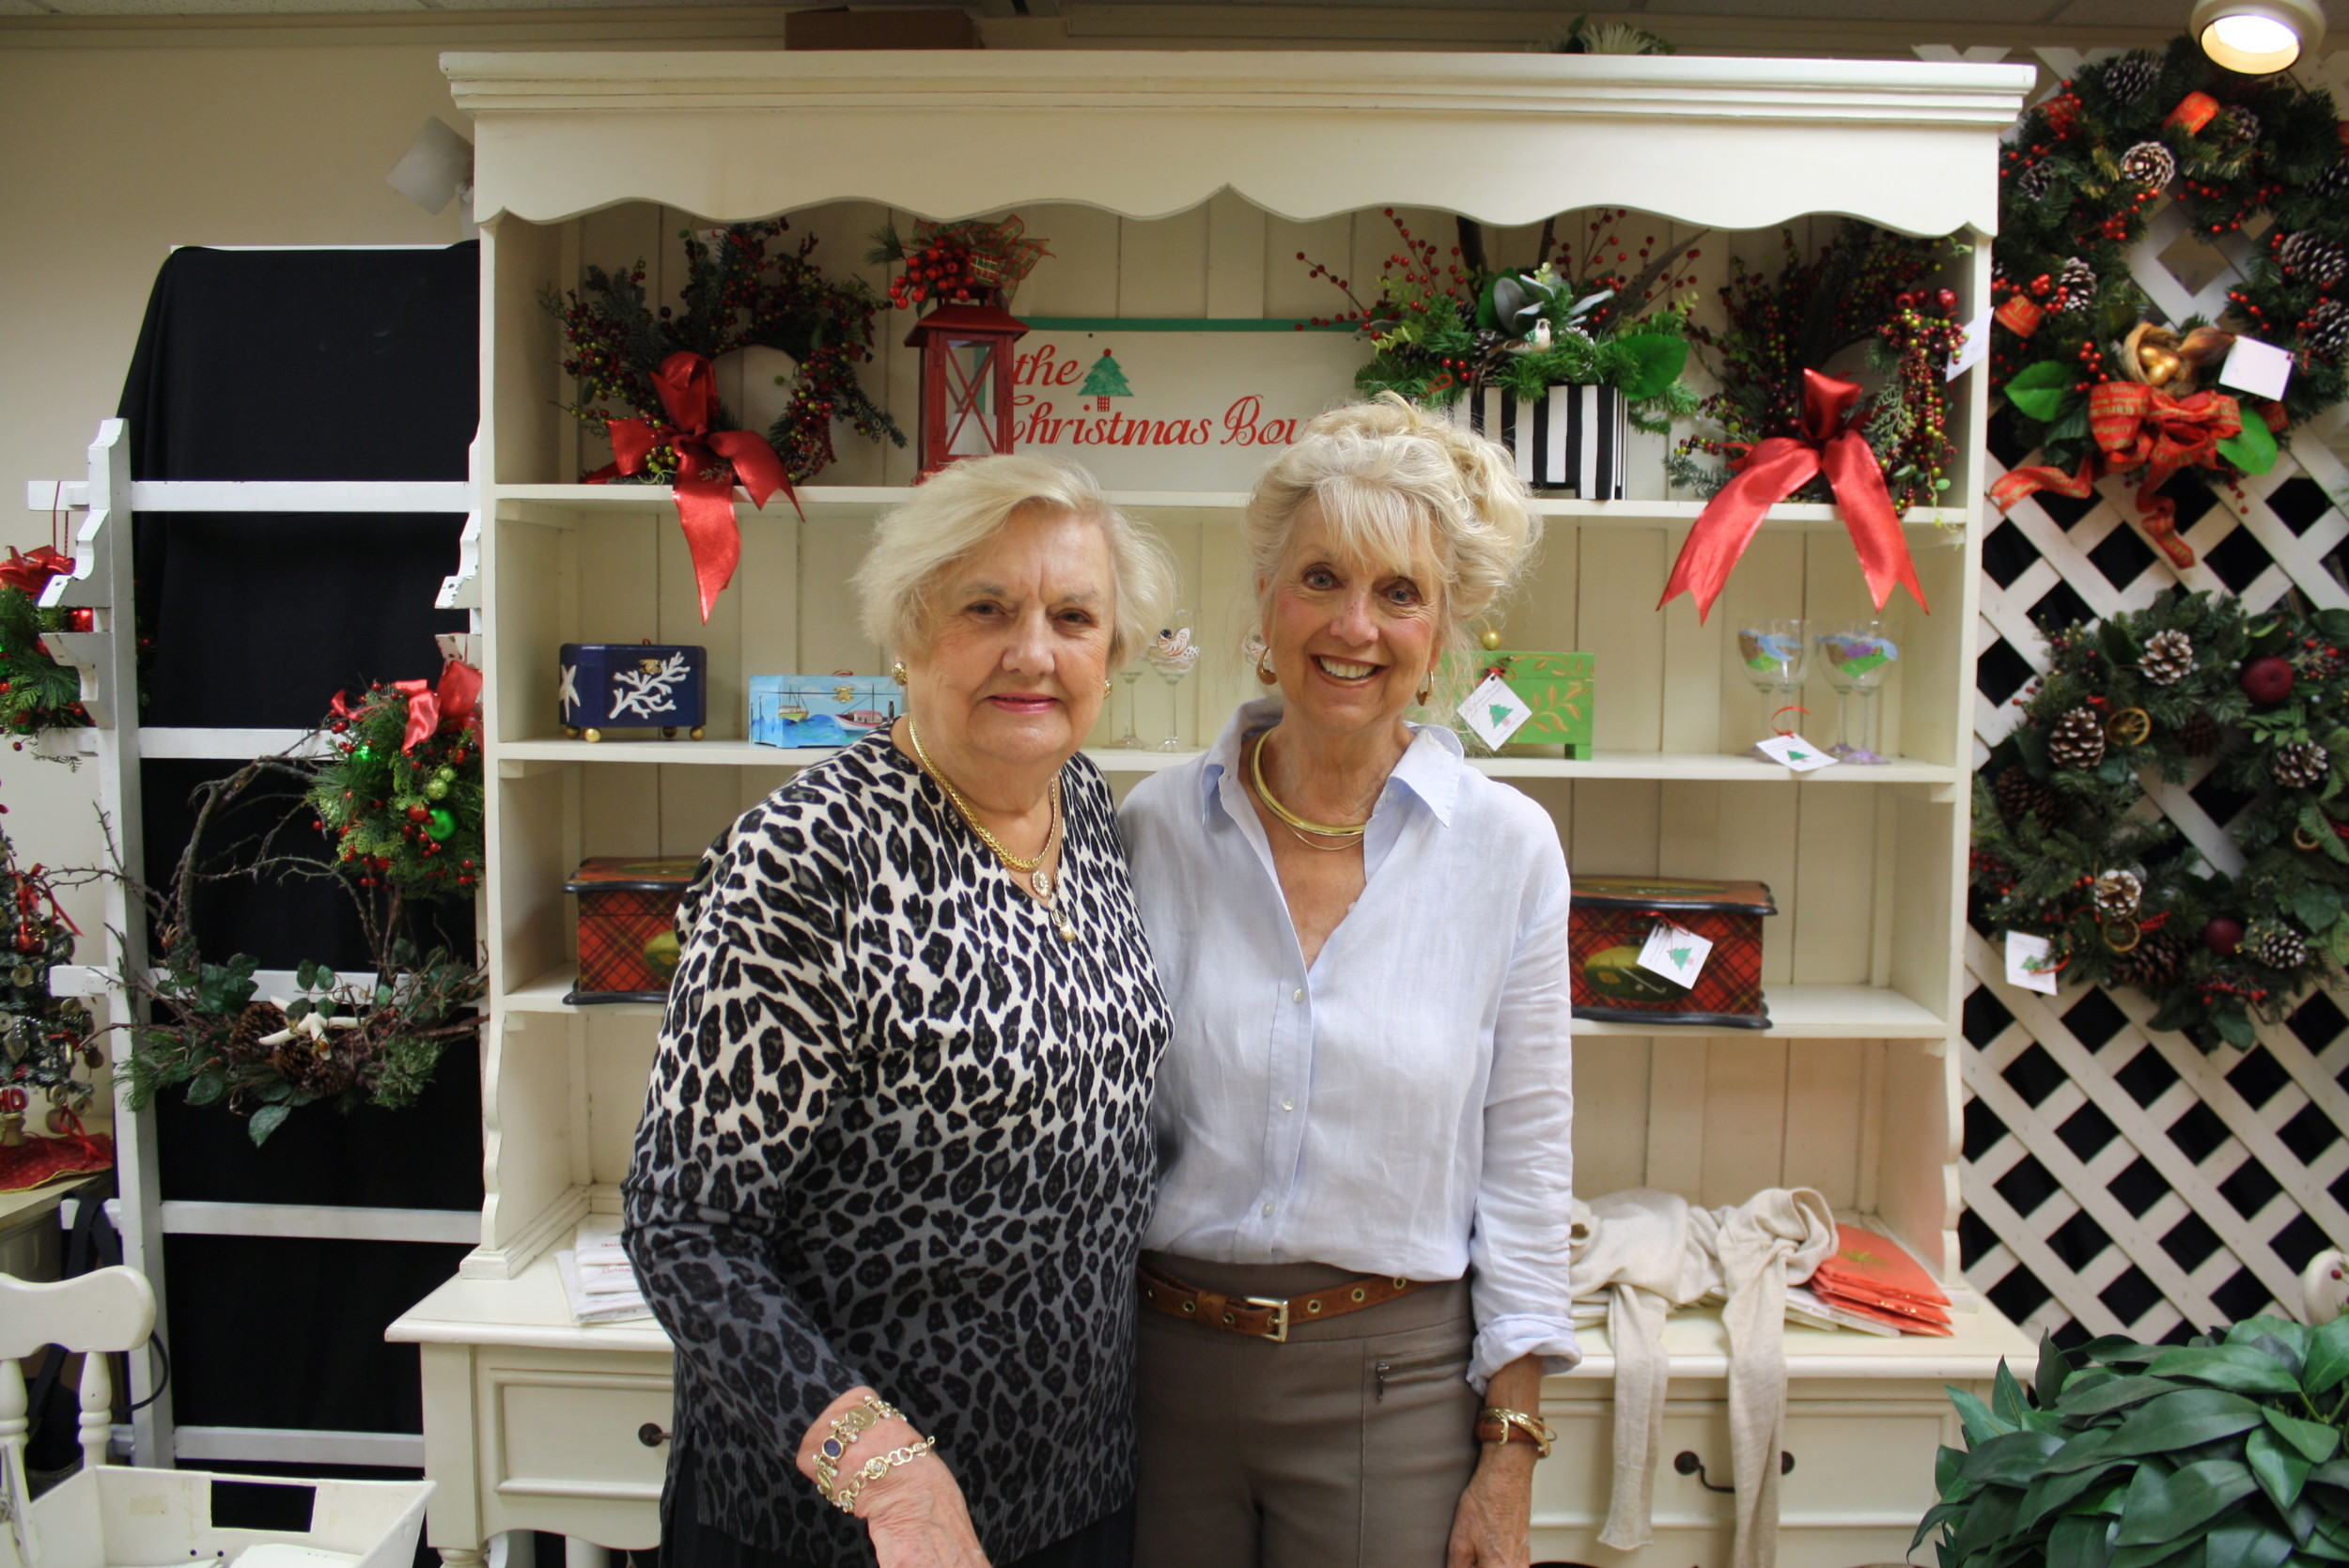 anet Wilson, a Board member and Brenda Ward, volunteer and longtime supporter of the Cultural Center.  Wilson donates all proceeds from her Holiday Shoppes booth back to the Cultural Center.